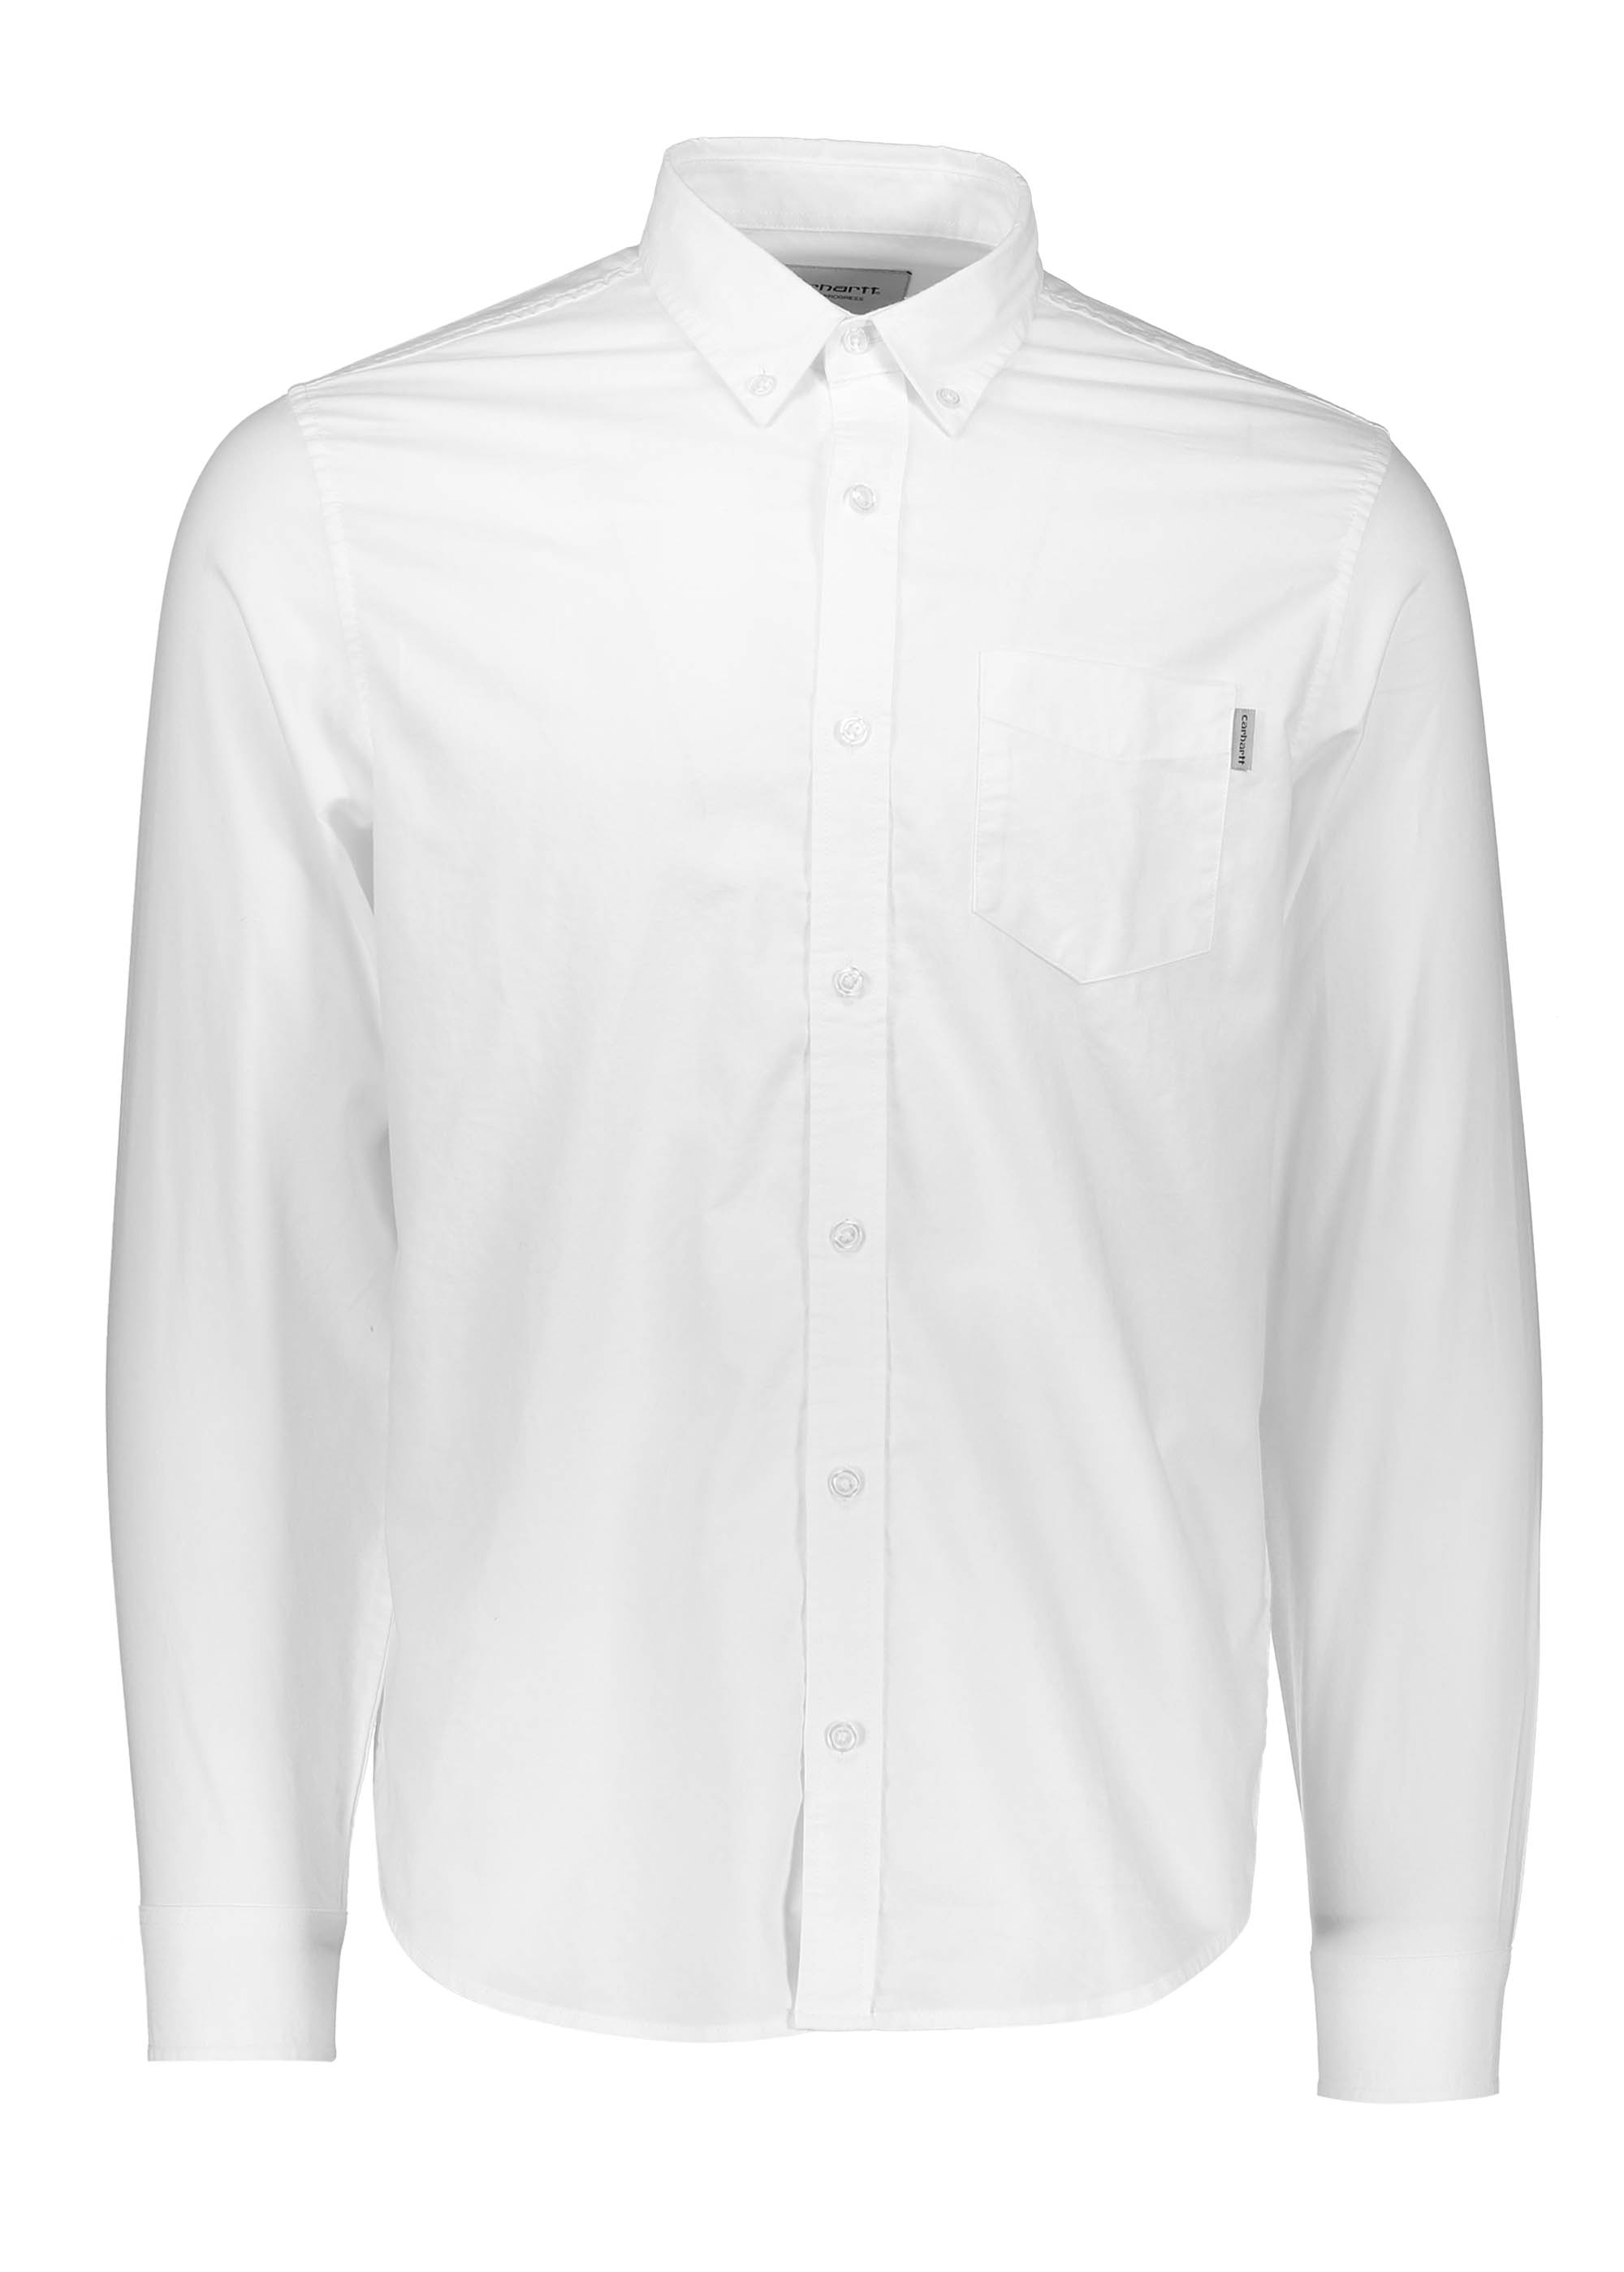 199b7605dbf ... Carhartt LS Button Down Pocket Shirt White Shirts from Triads UK